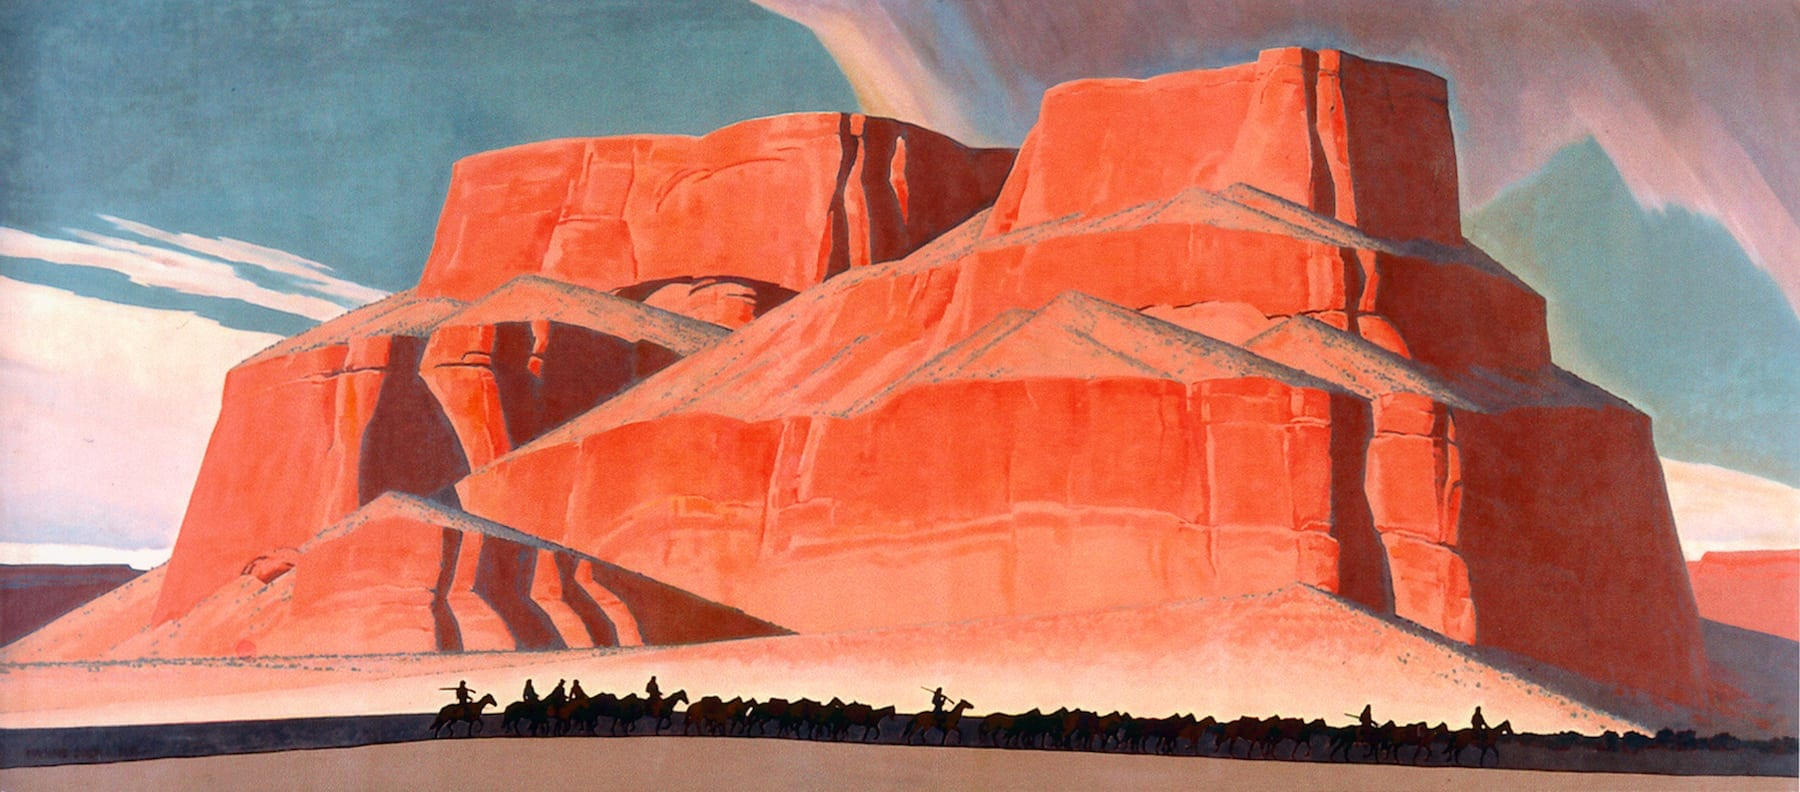 """Maynard Dixon (1875–1946): """"Red Butte with Mountain Men,"""" (1935). Oil on canvas, 95 x 213 in. Booth Western Art Museum, Cartersville, GA."""